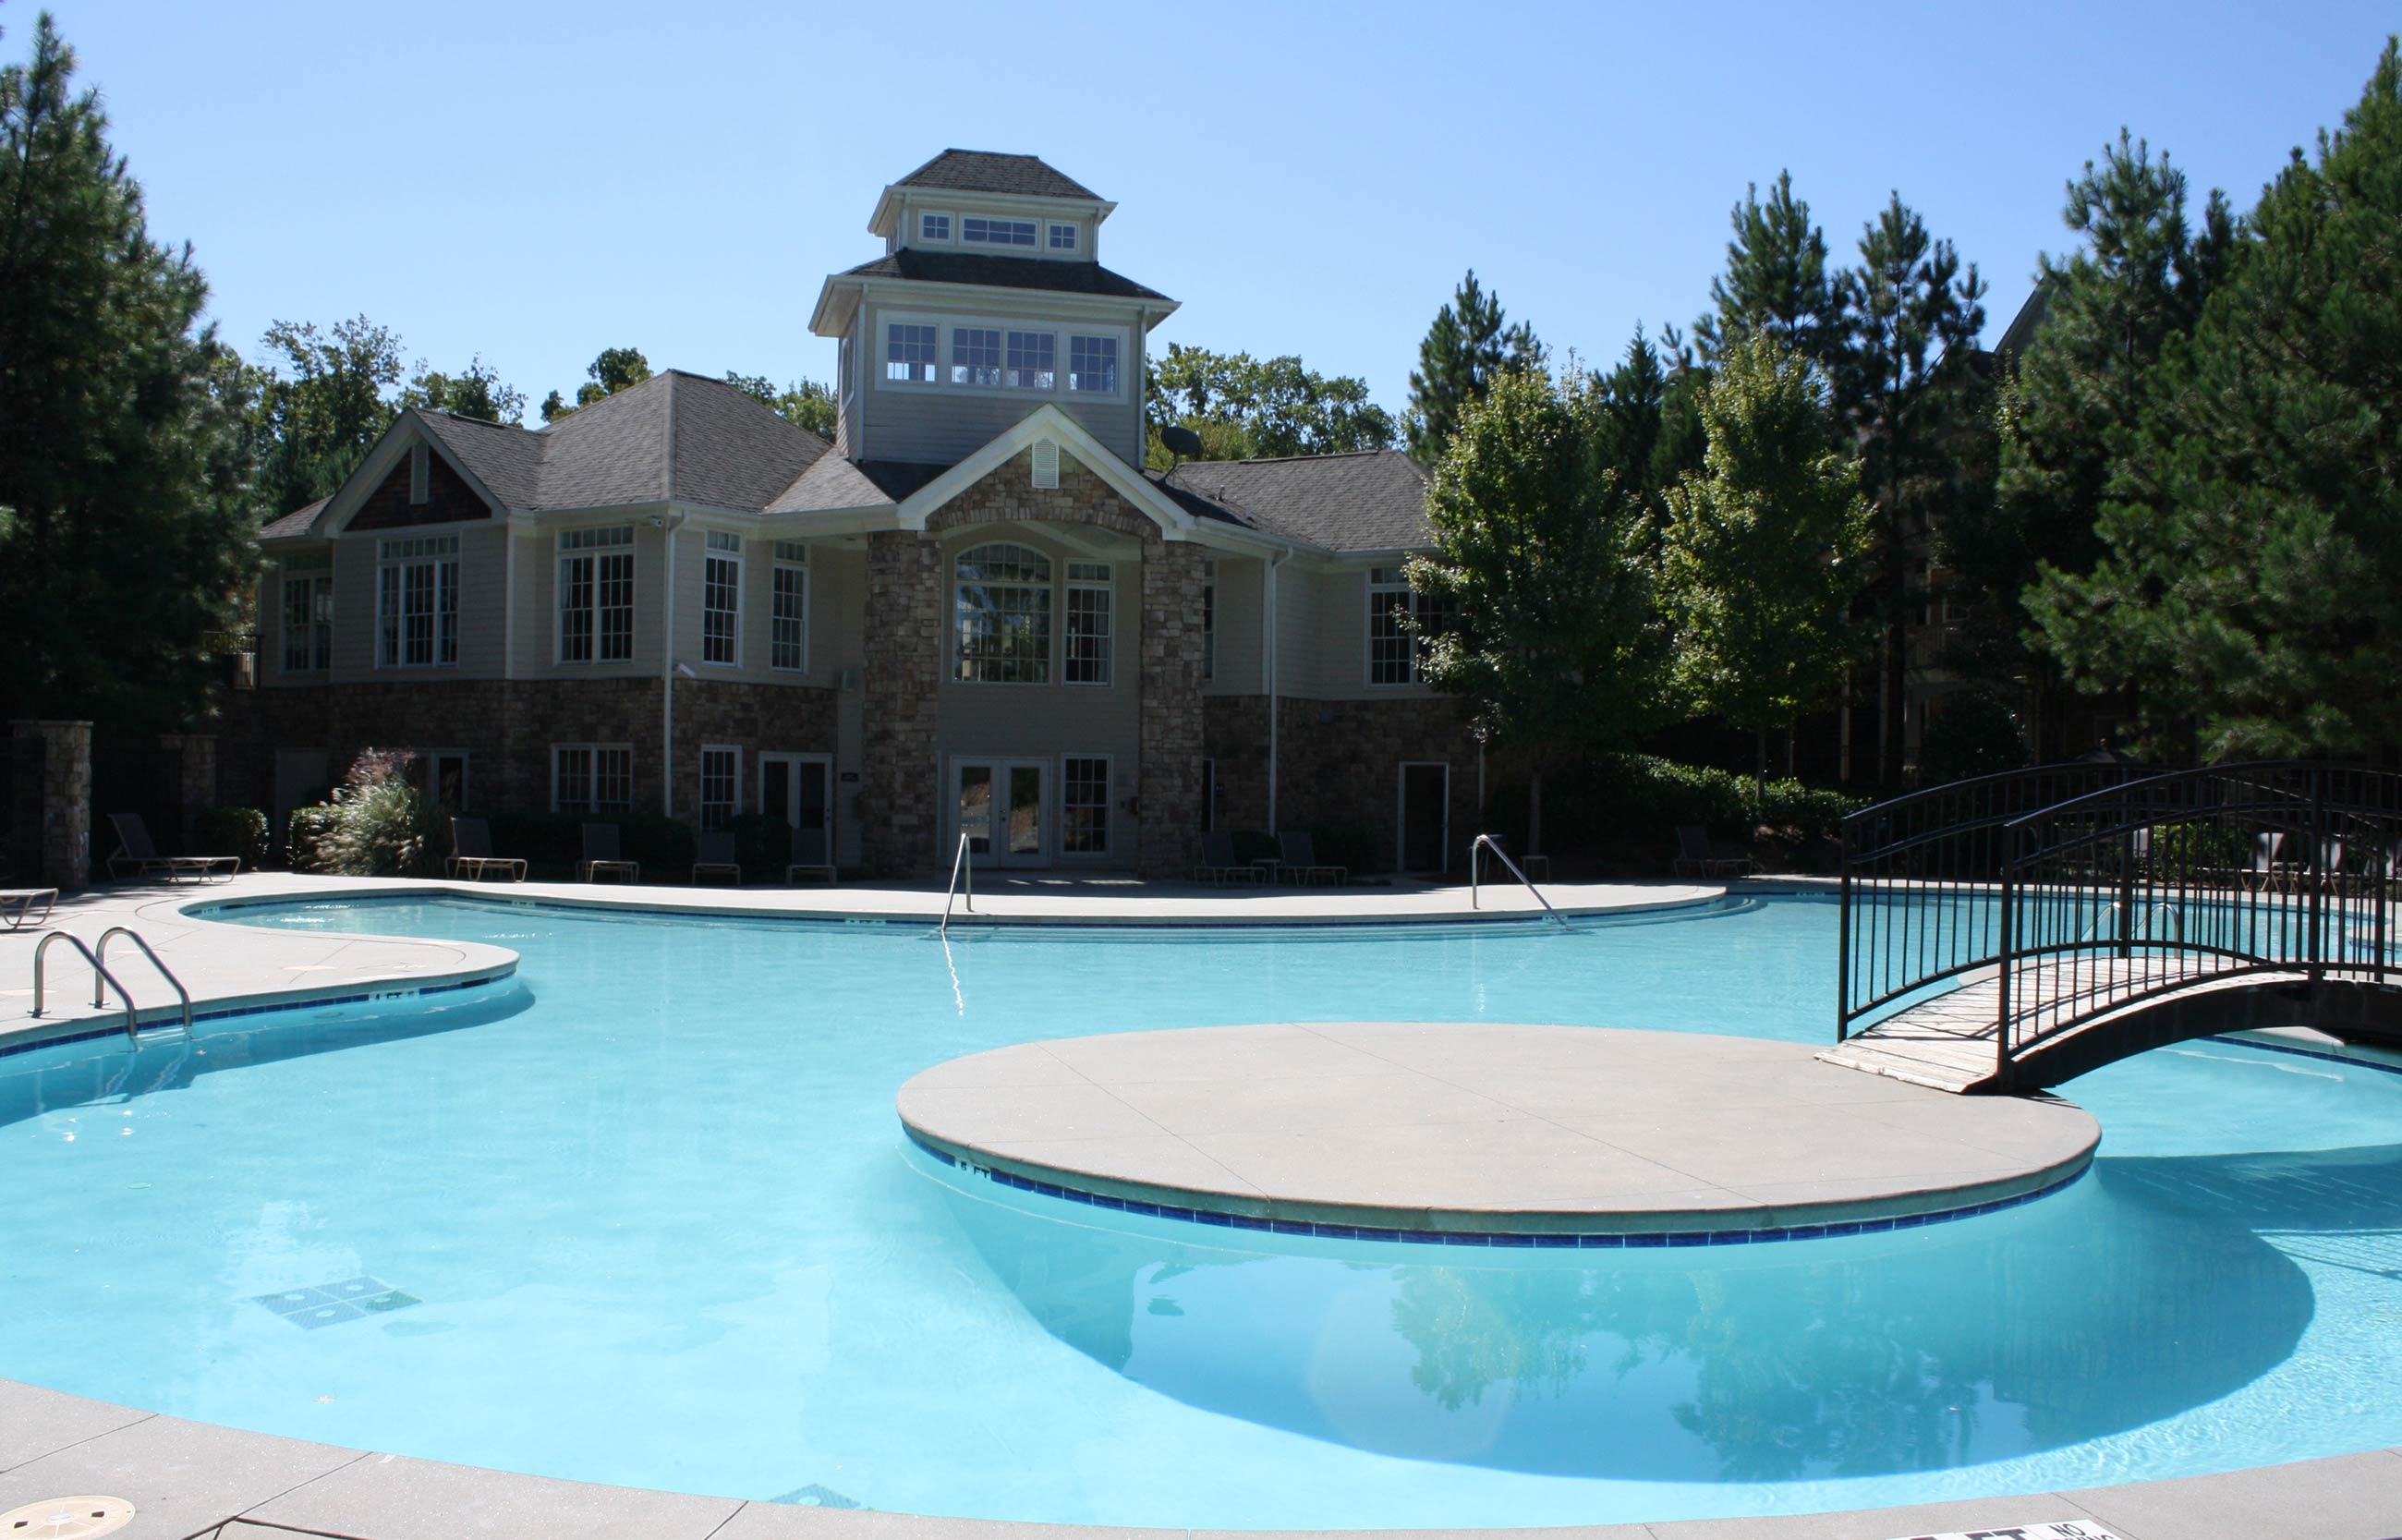 Apartments in Norcross offering a sparkling swimming pool